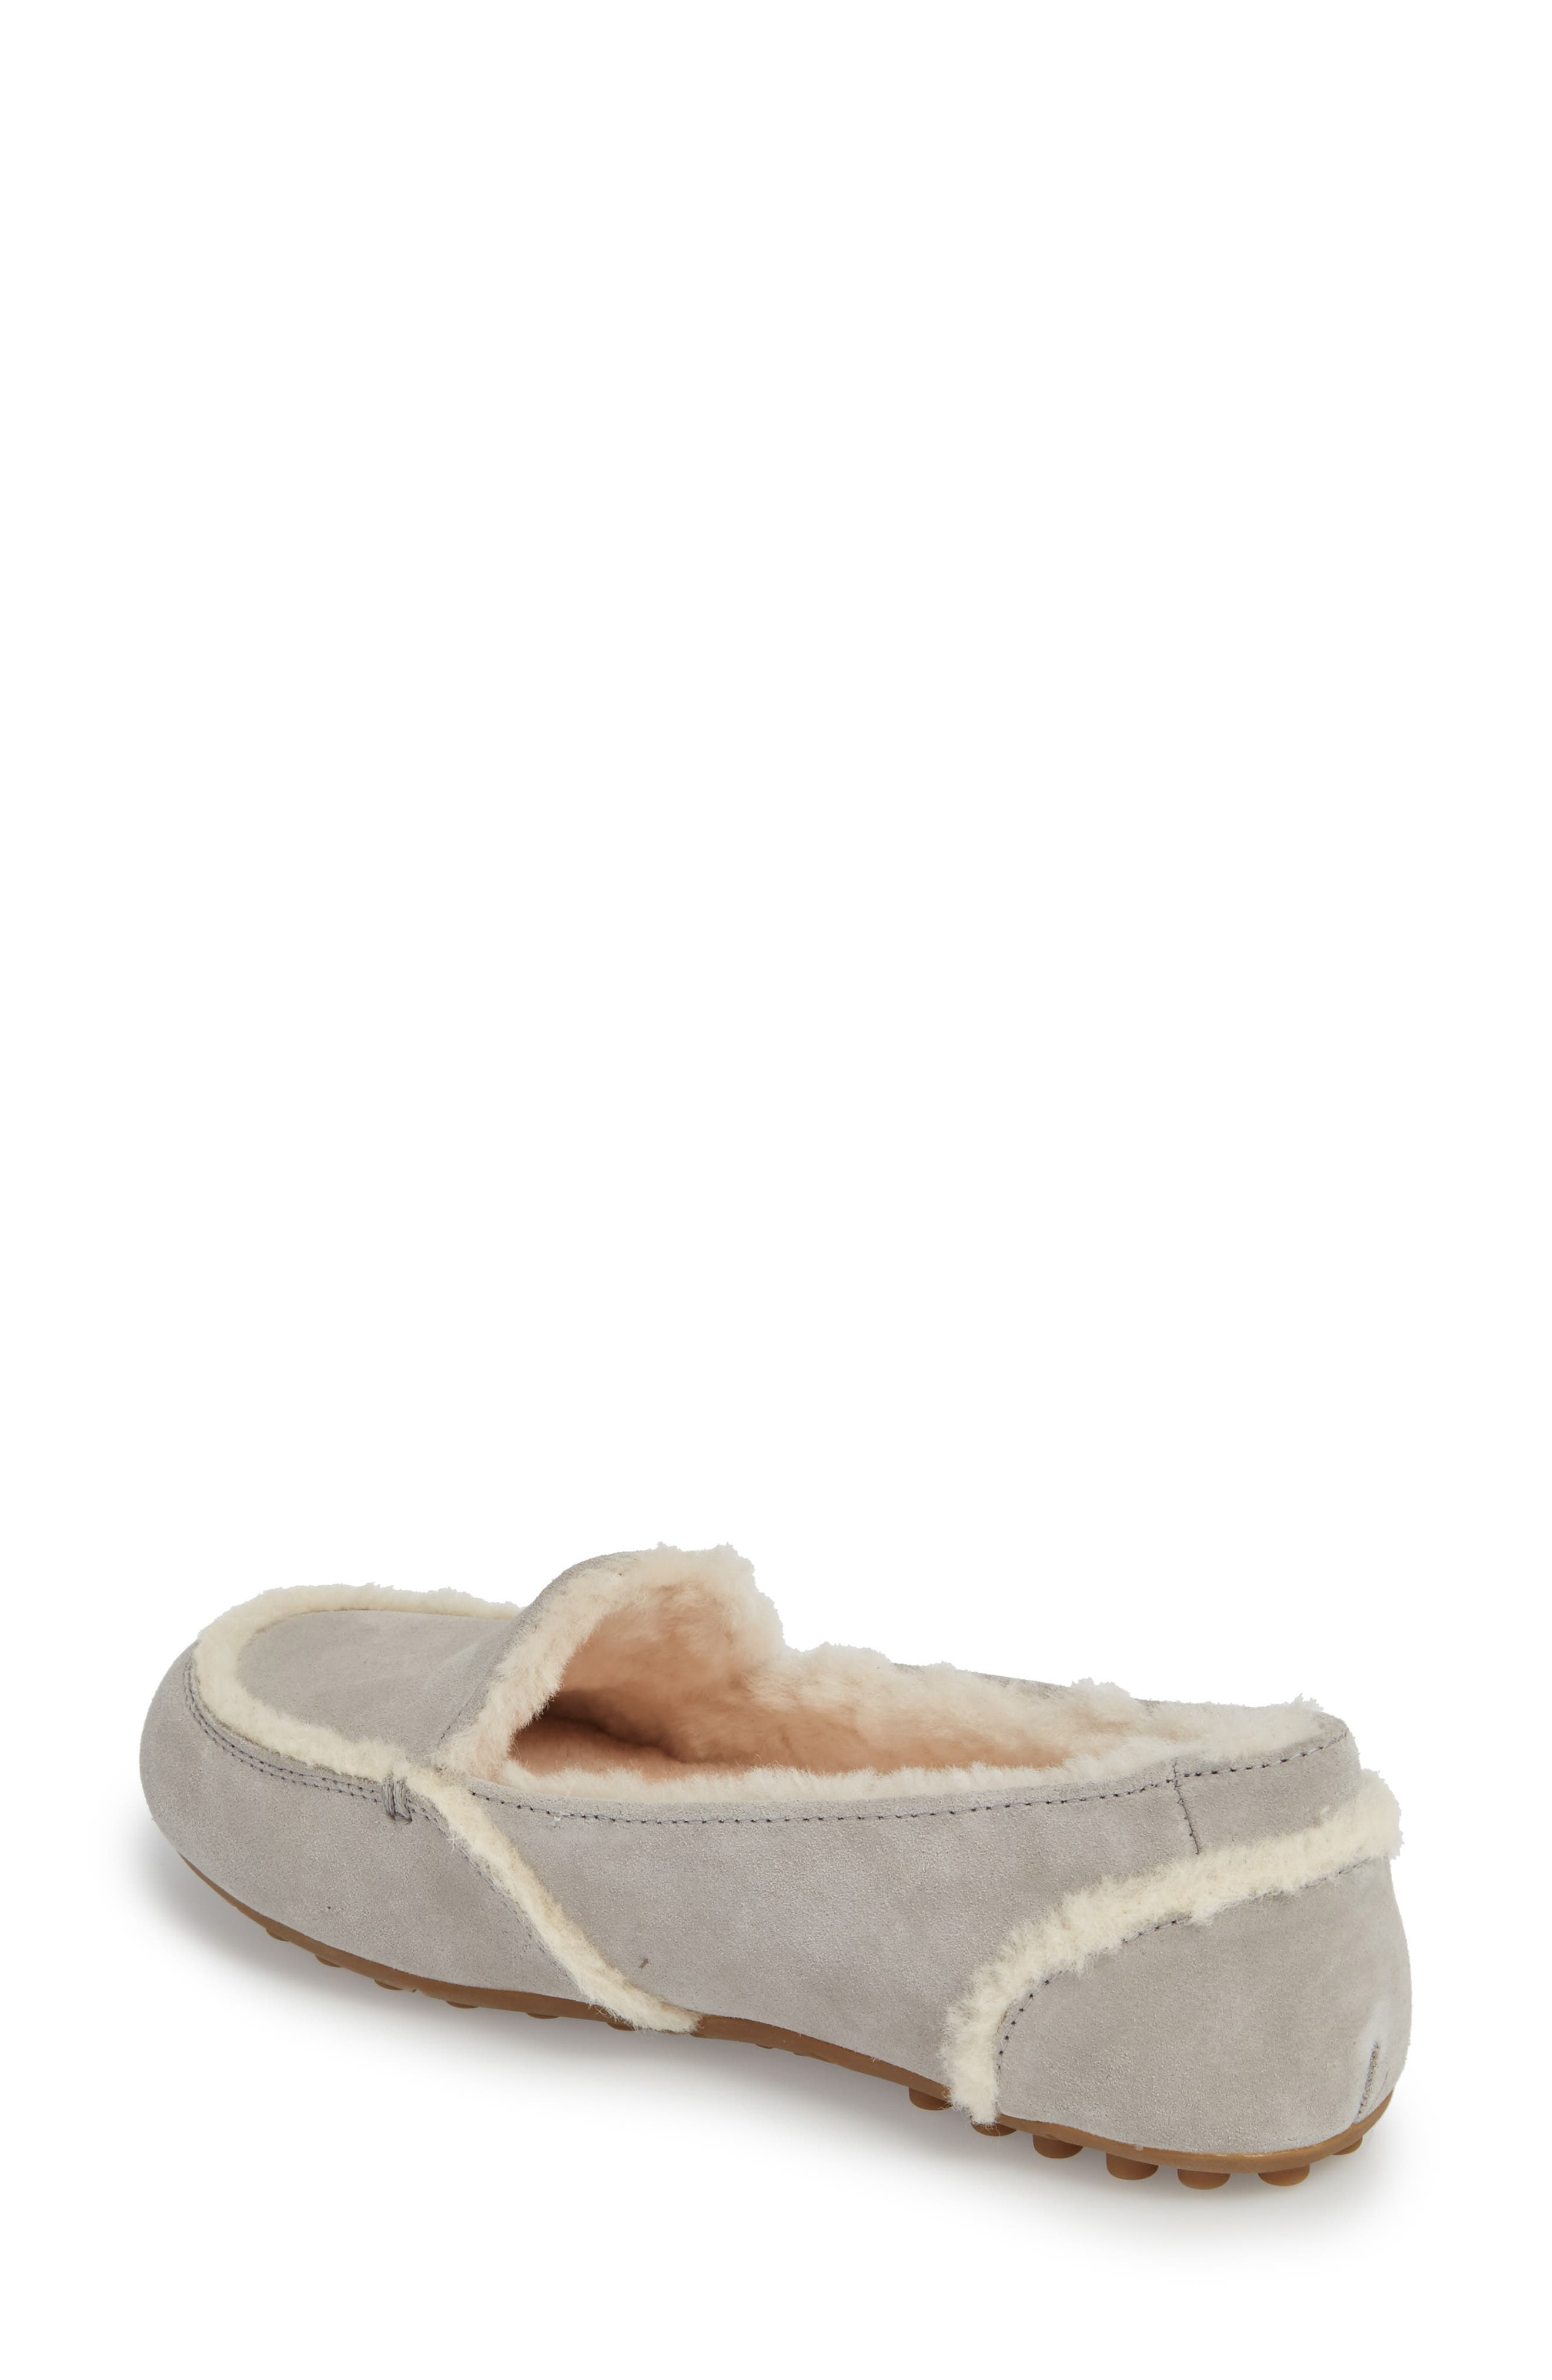 Hailey Slipper,                             Alternate thumbnail 3, color,                             Grey Suede